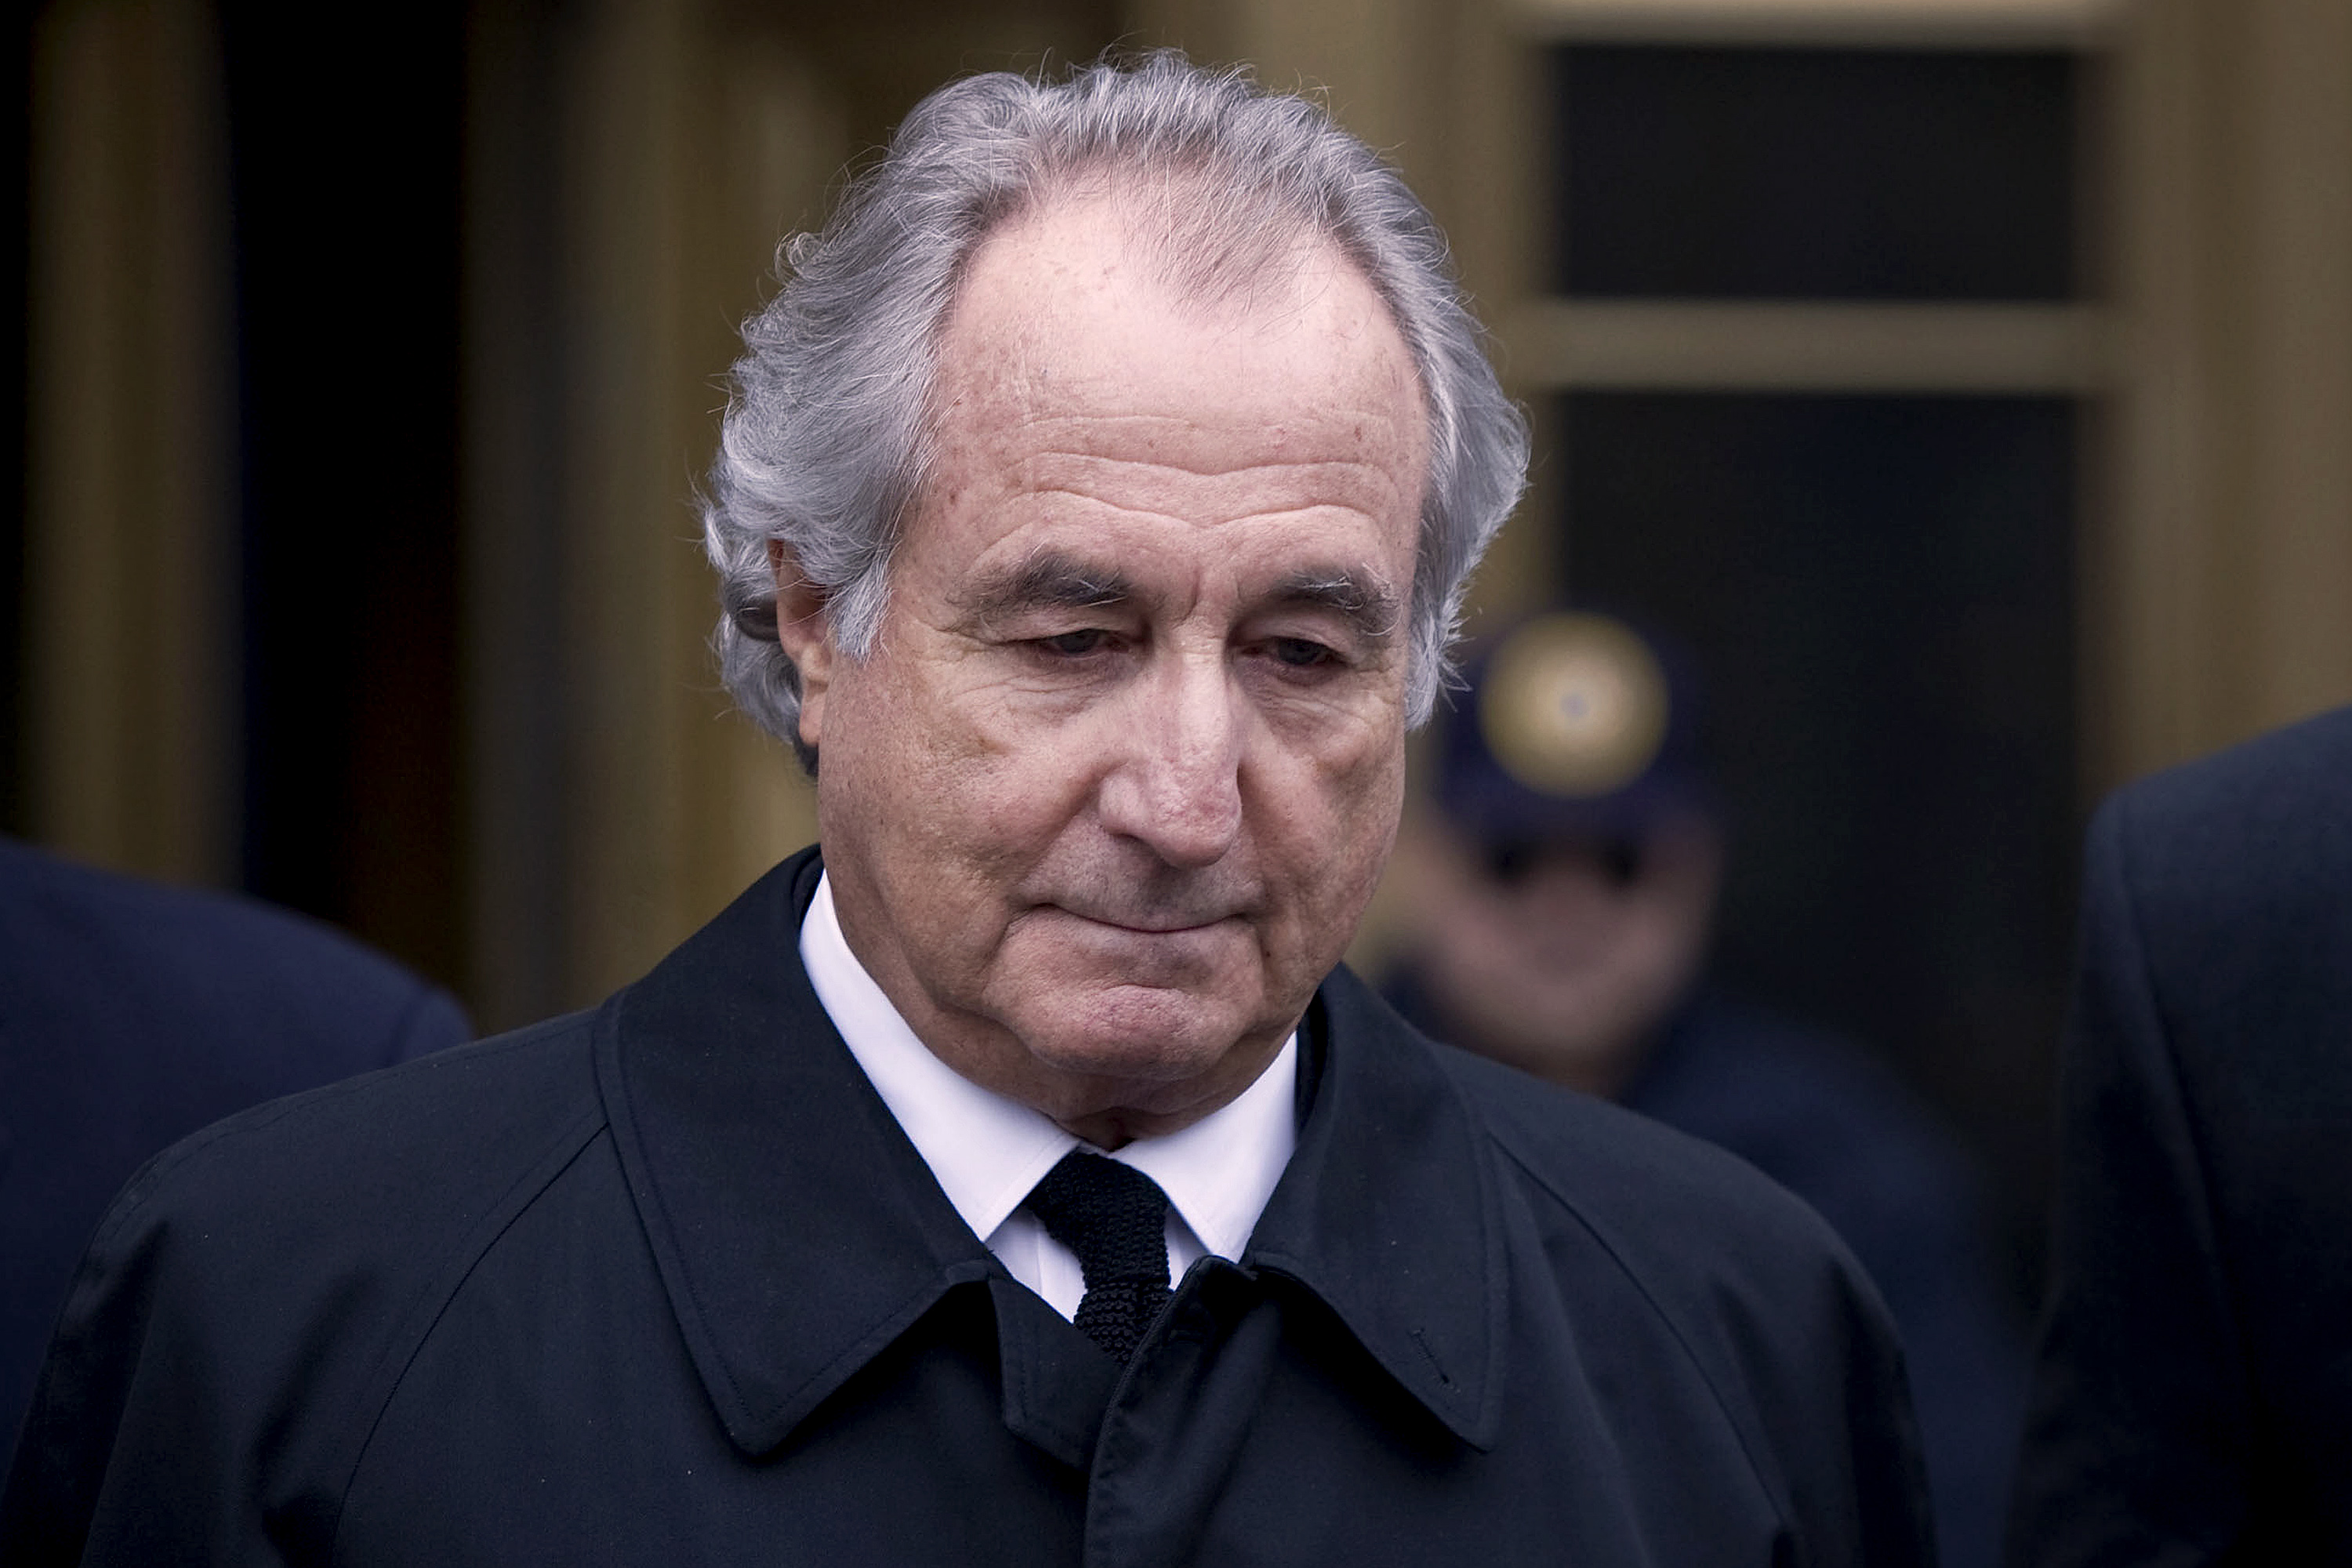 Bernard Madoff, founder of Bernard L. Madoff Investment Secu